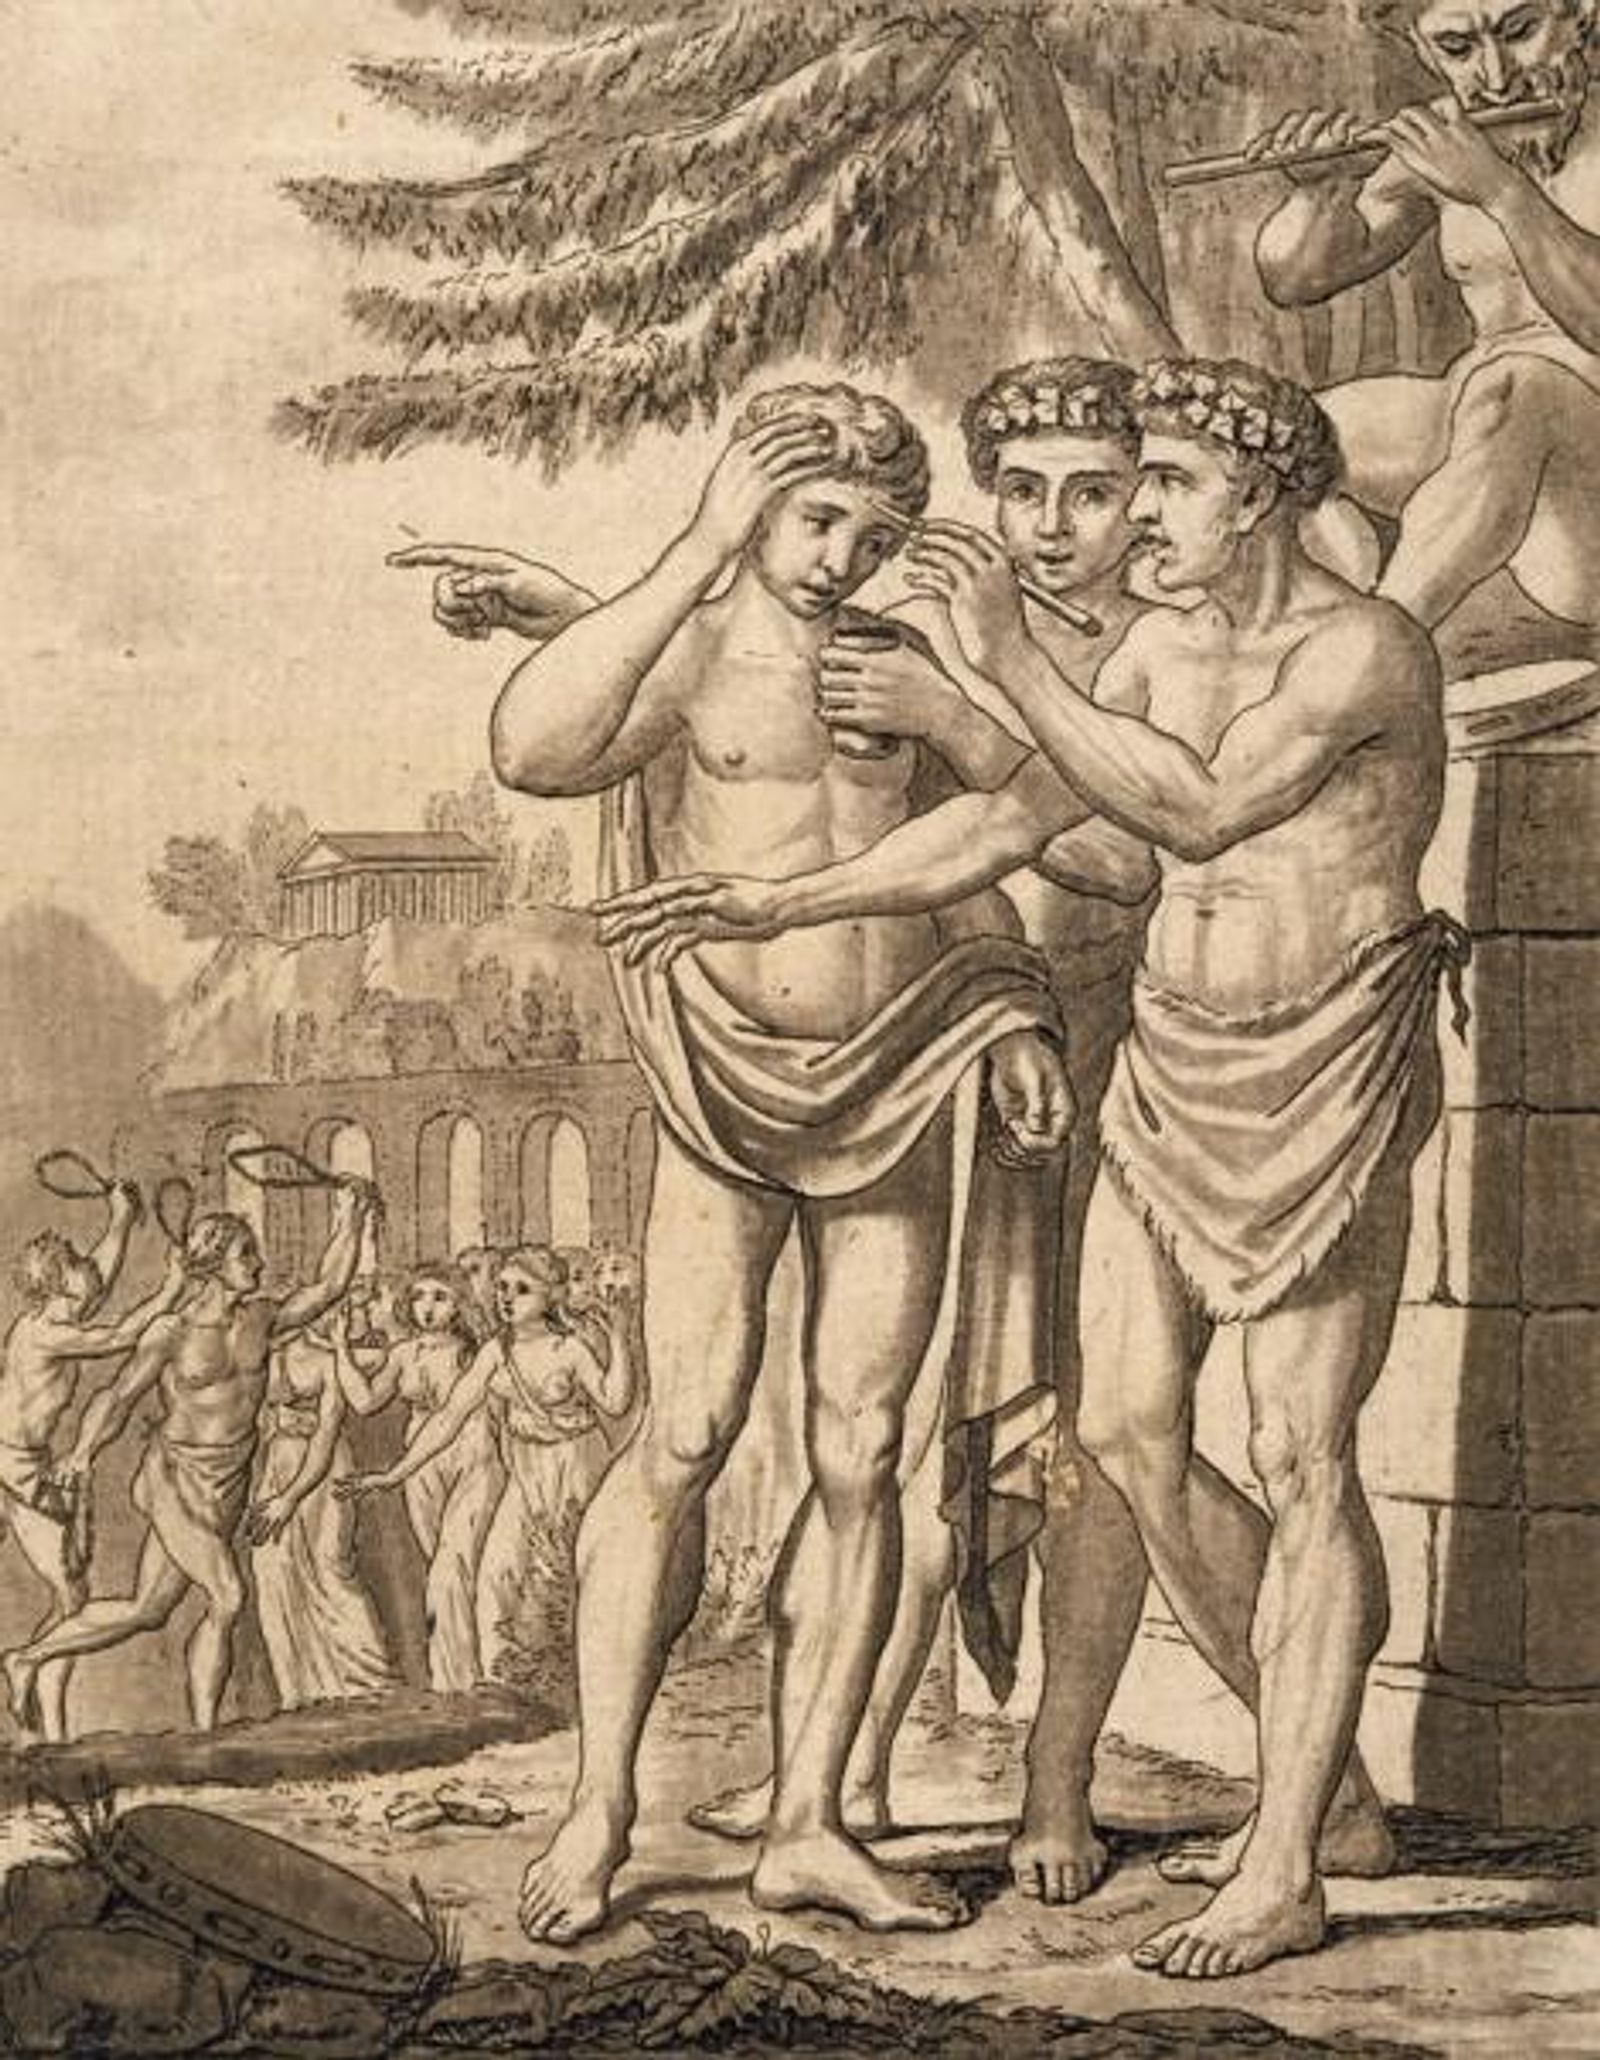 Valentine's Day: A History of Naked Romans, Paganism and Whips!